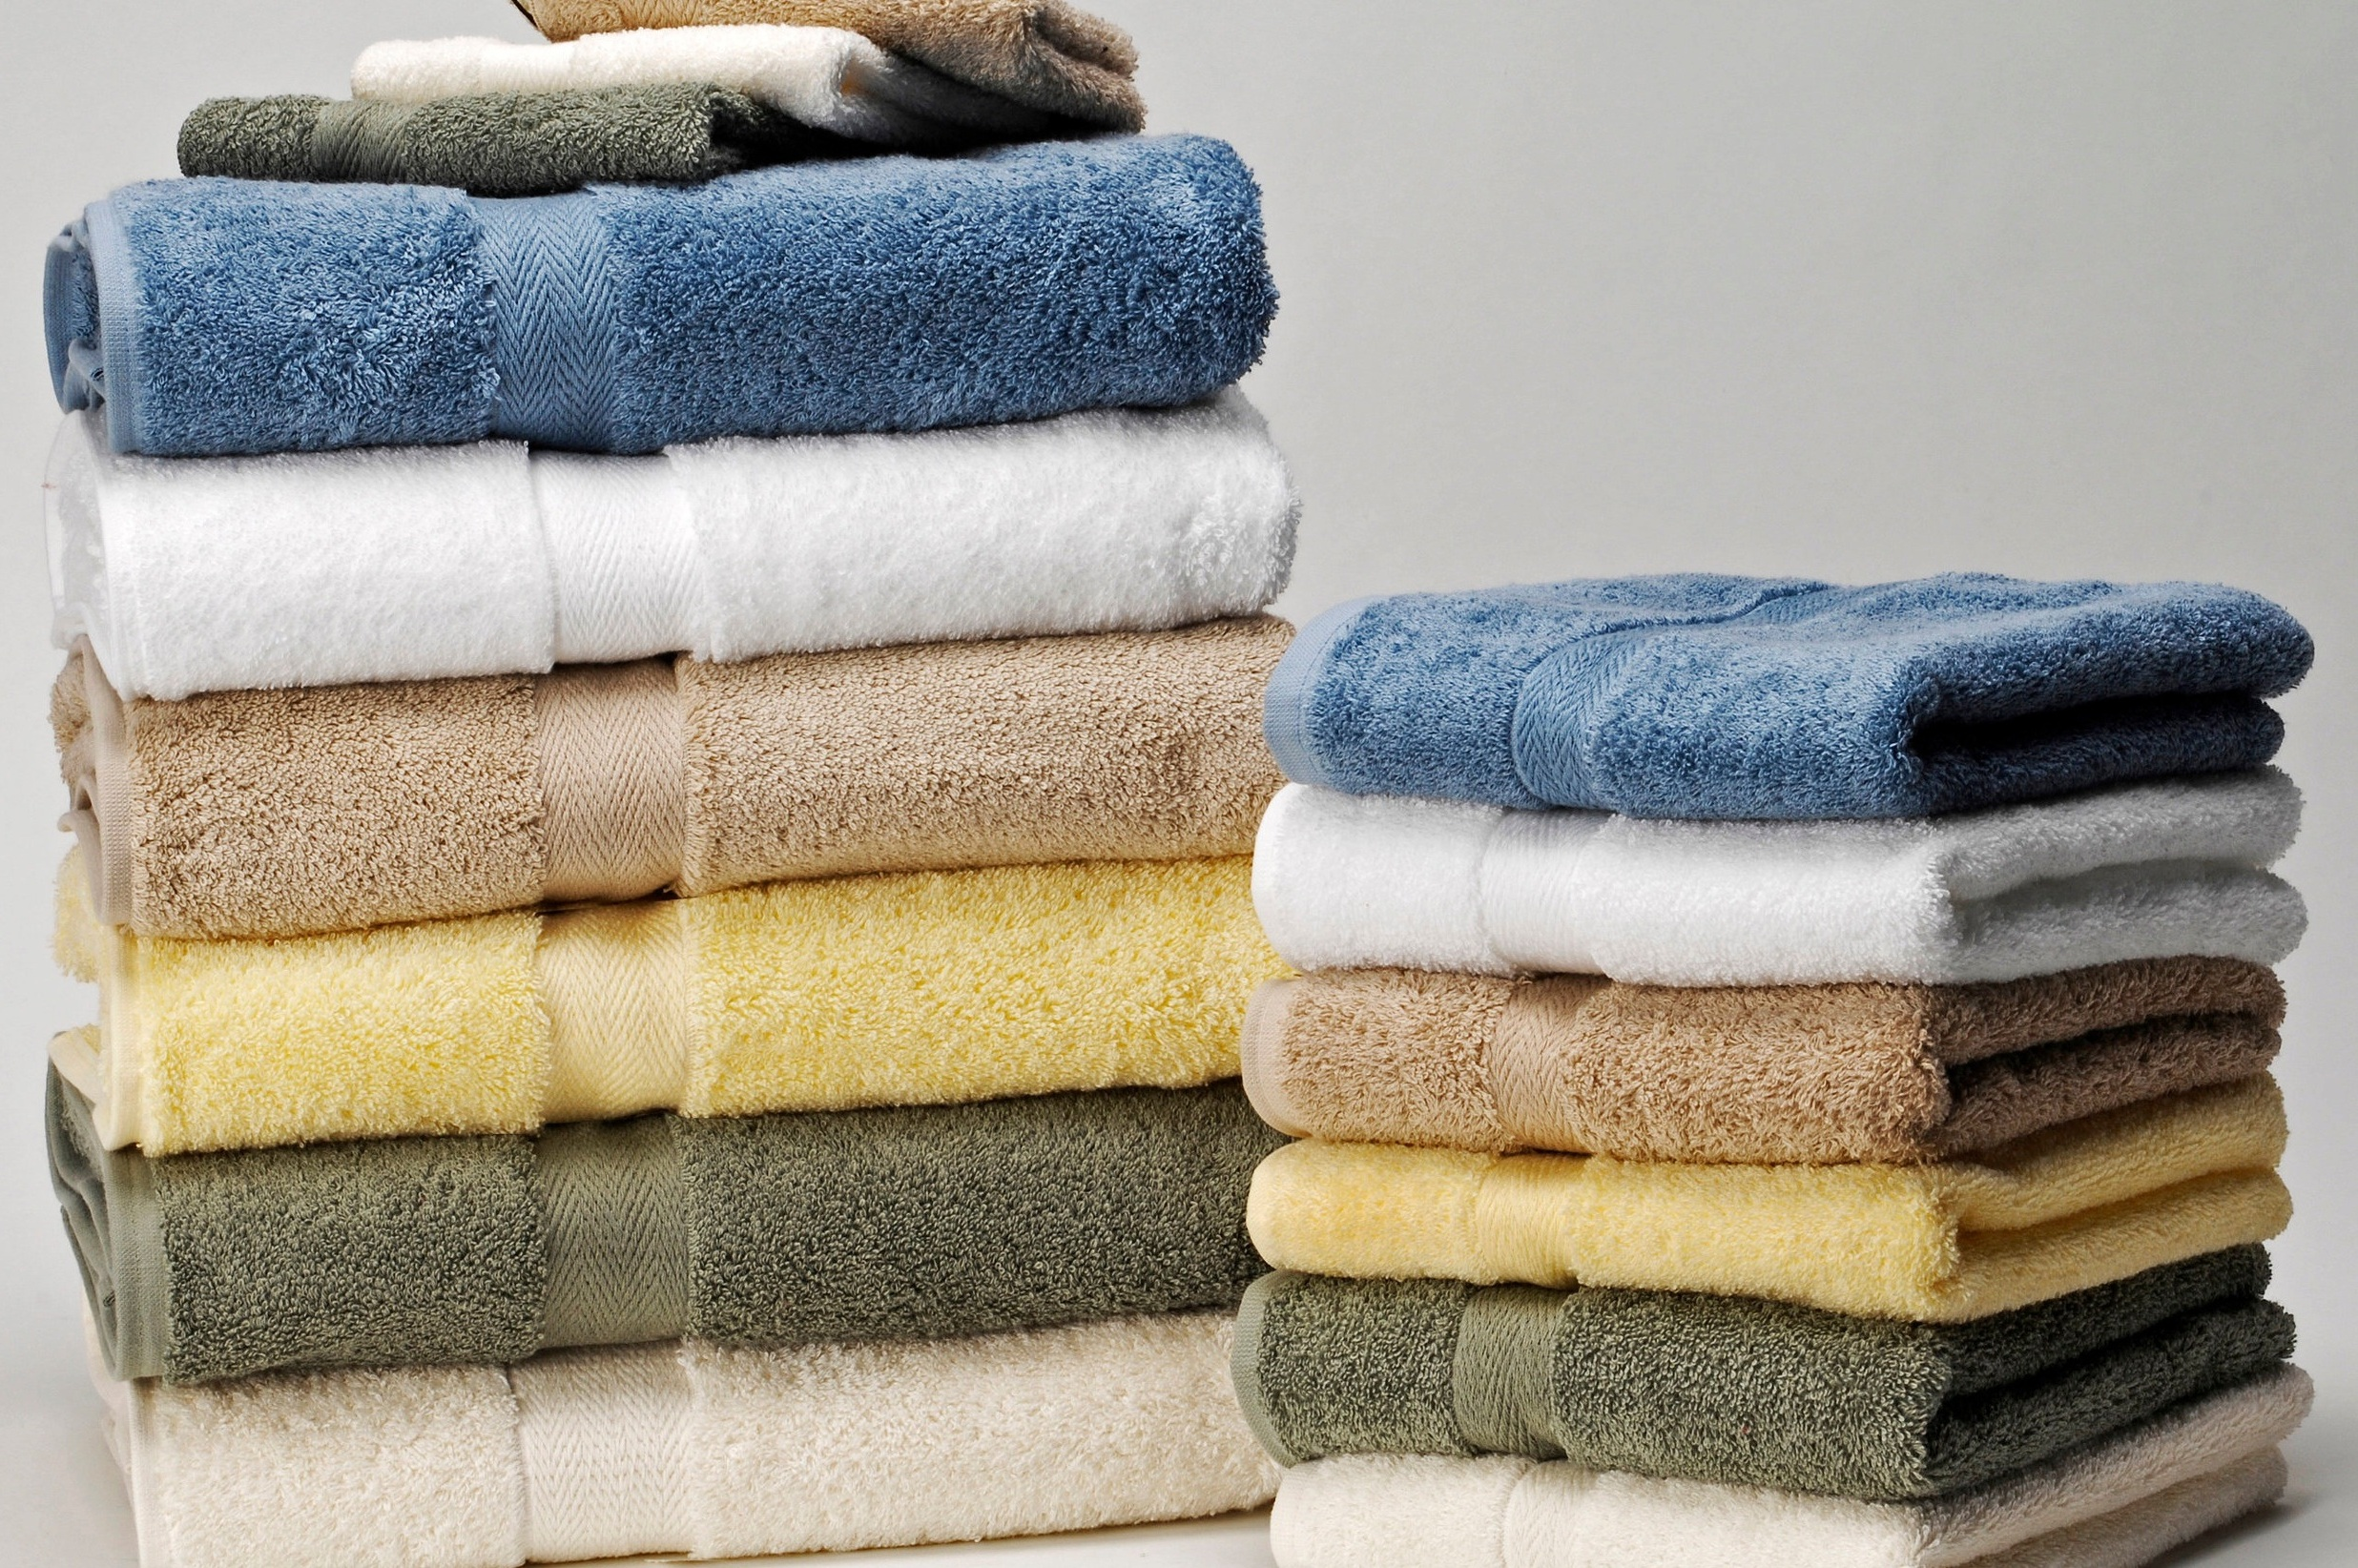 TOWELS & BEDDING -